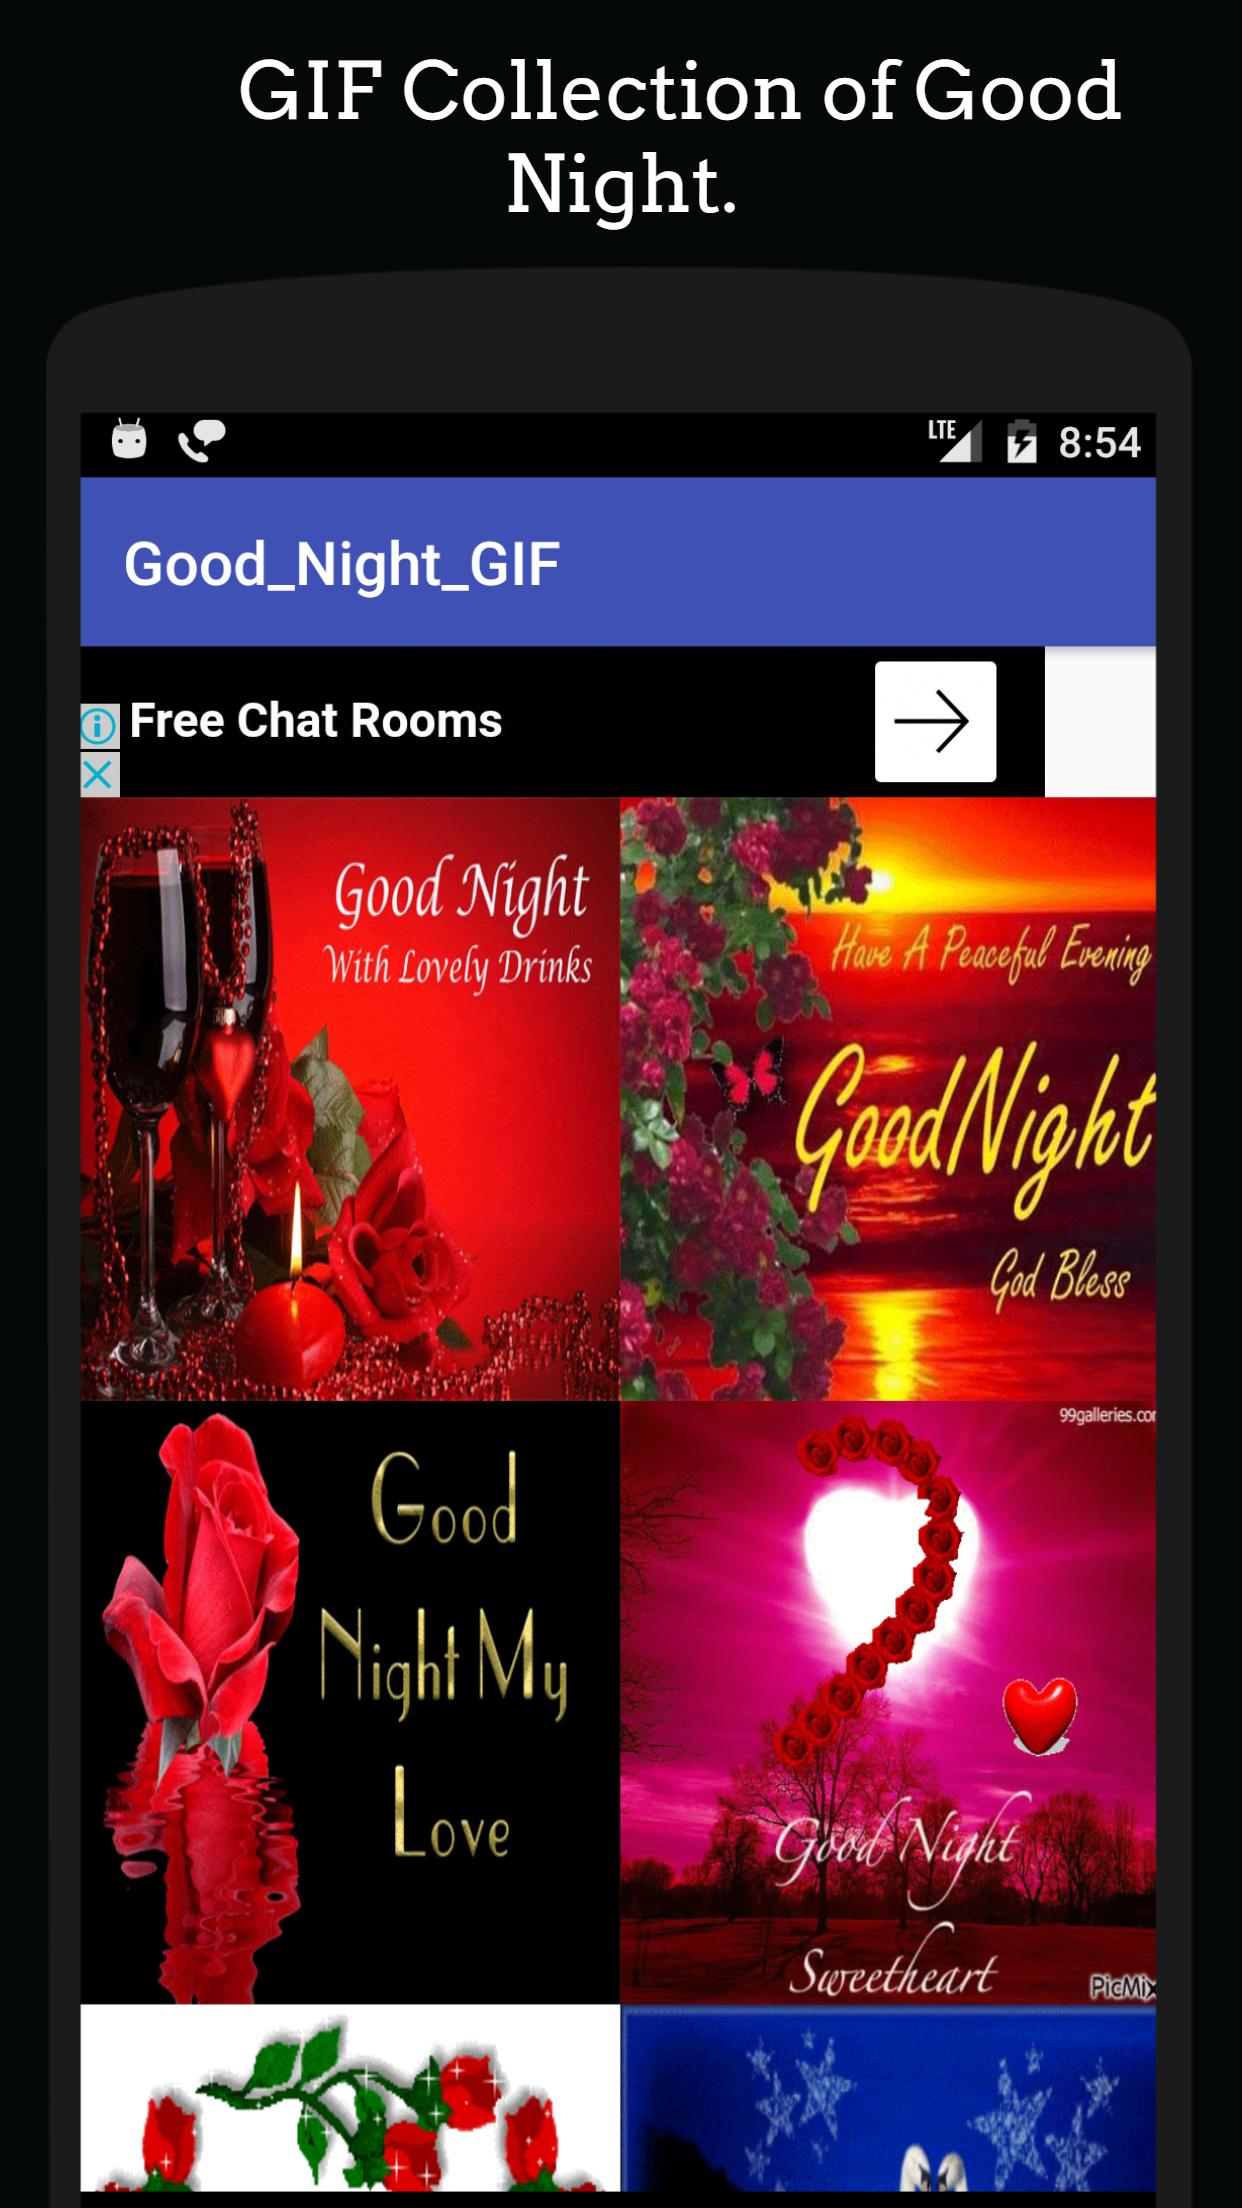 Good Night GIF 🌝 for Android - APK Download